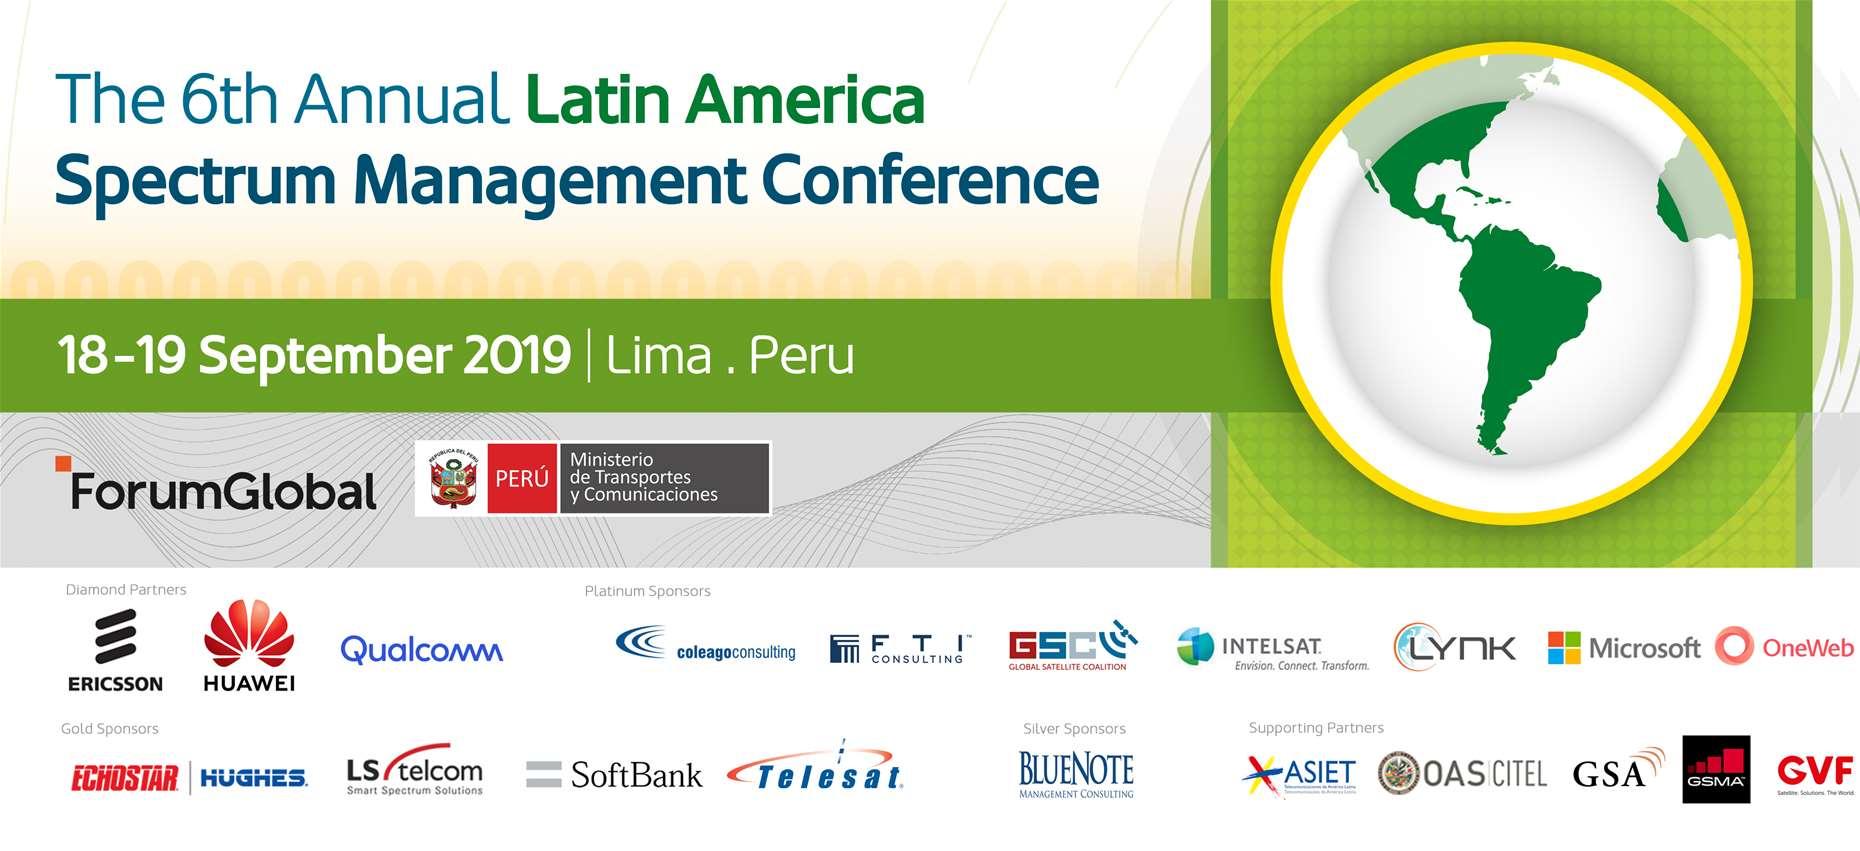 The 6th Annual Latin Americas Spectrum Management Conference